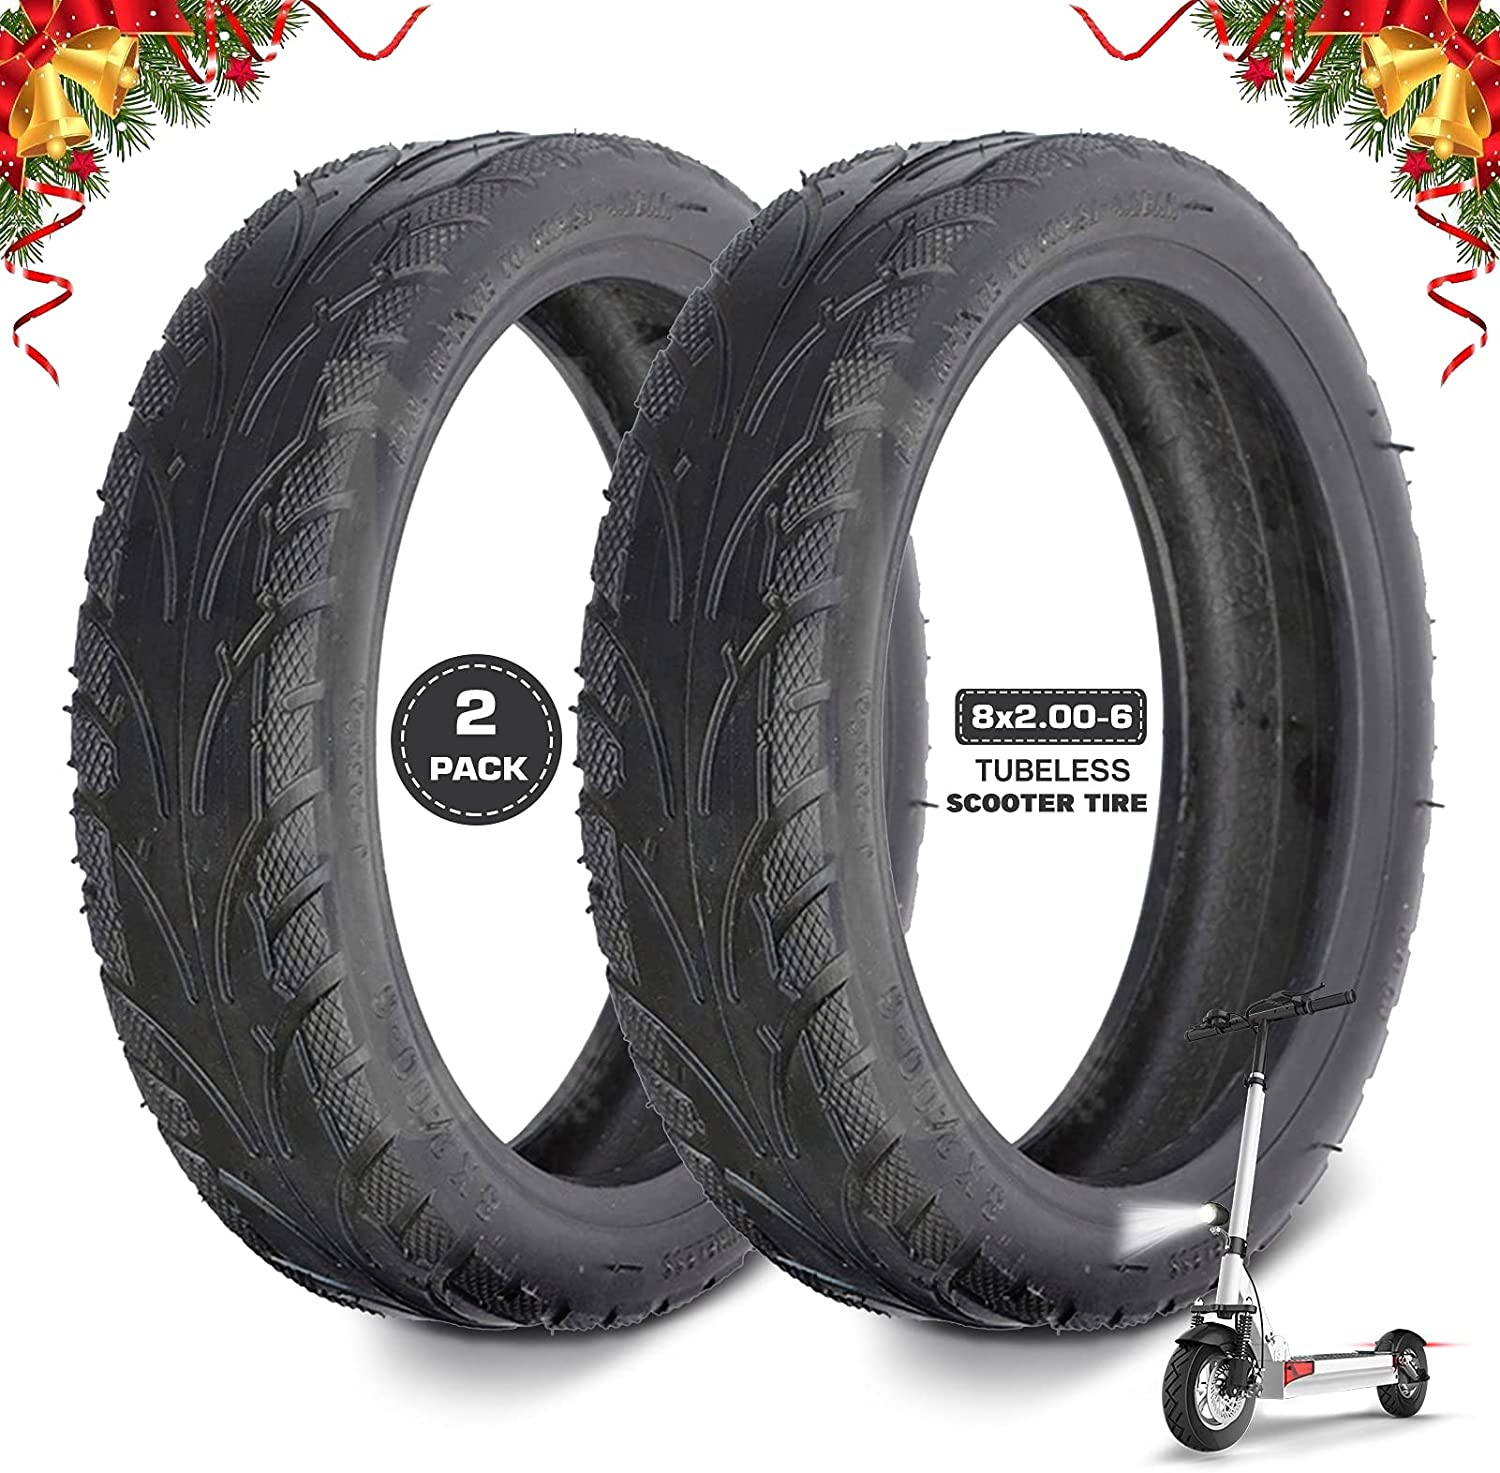 LVMMO 8x2.00-6 Scooter Max 86% OFF Tubeless Tire Outer 8 Inch Thickened Sale item Tir